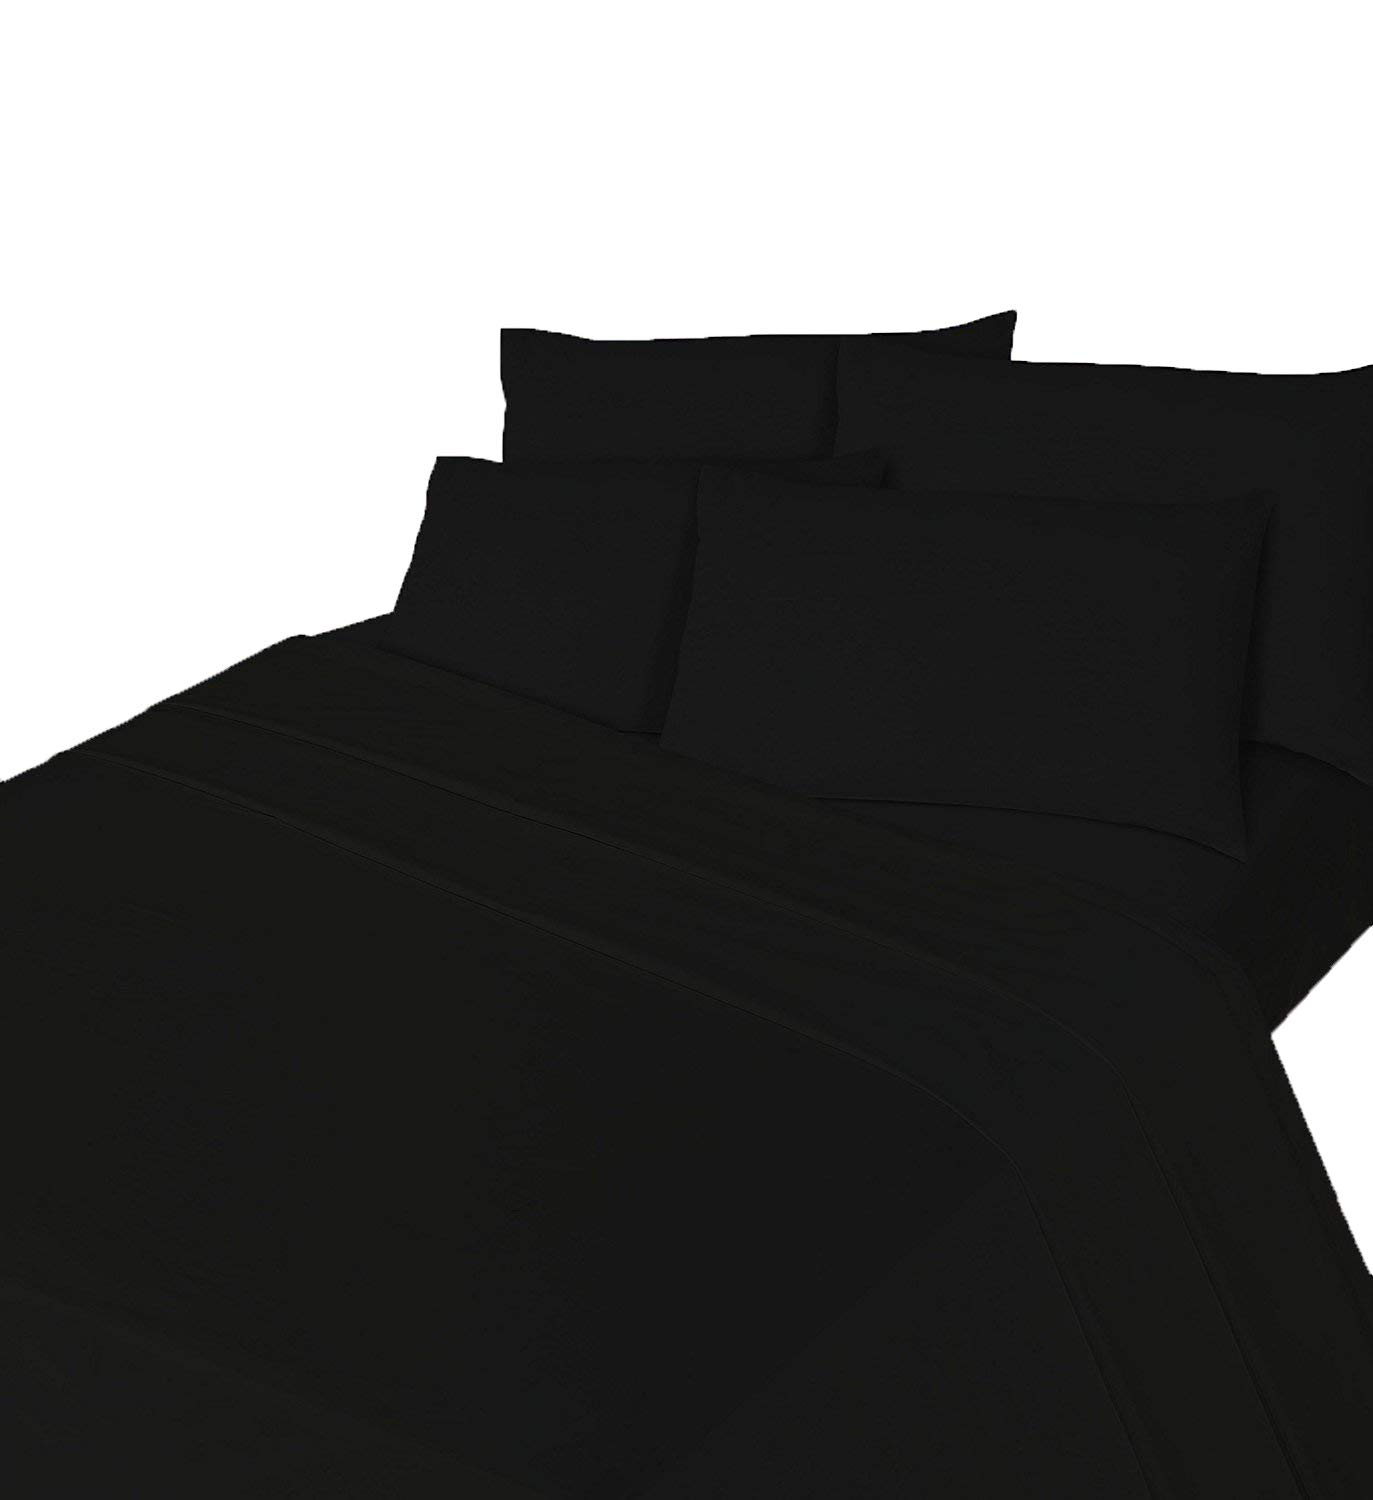 Comfy Nights Brushed Thermal Cotton Flannelette Fitted Sheet or Pillow Pair, 4Ft/Small Double - Black Home Tex Ent